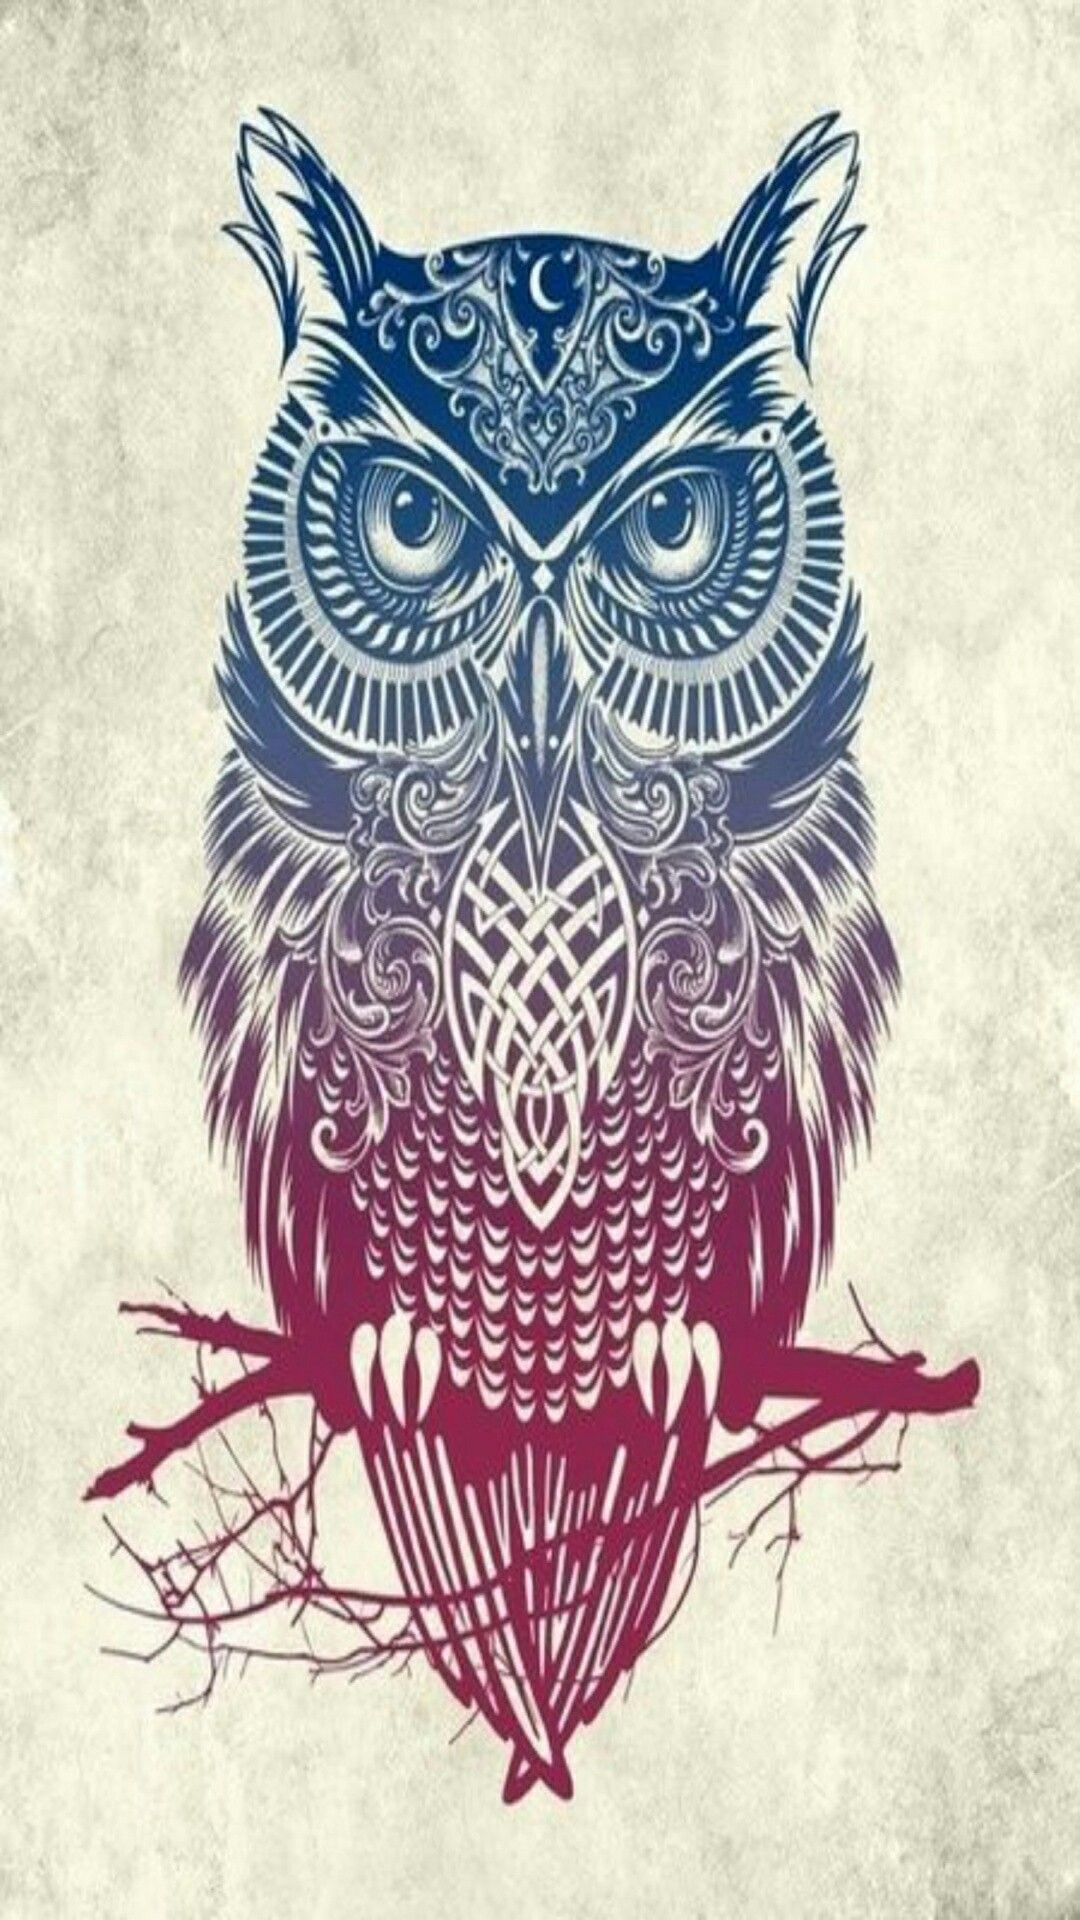 1080x1920 Pin by Teodora Elena on art | Pinterest | Wallpaper backgrounds and ...